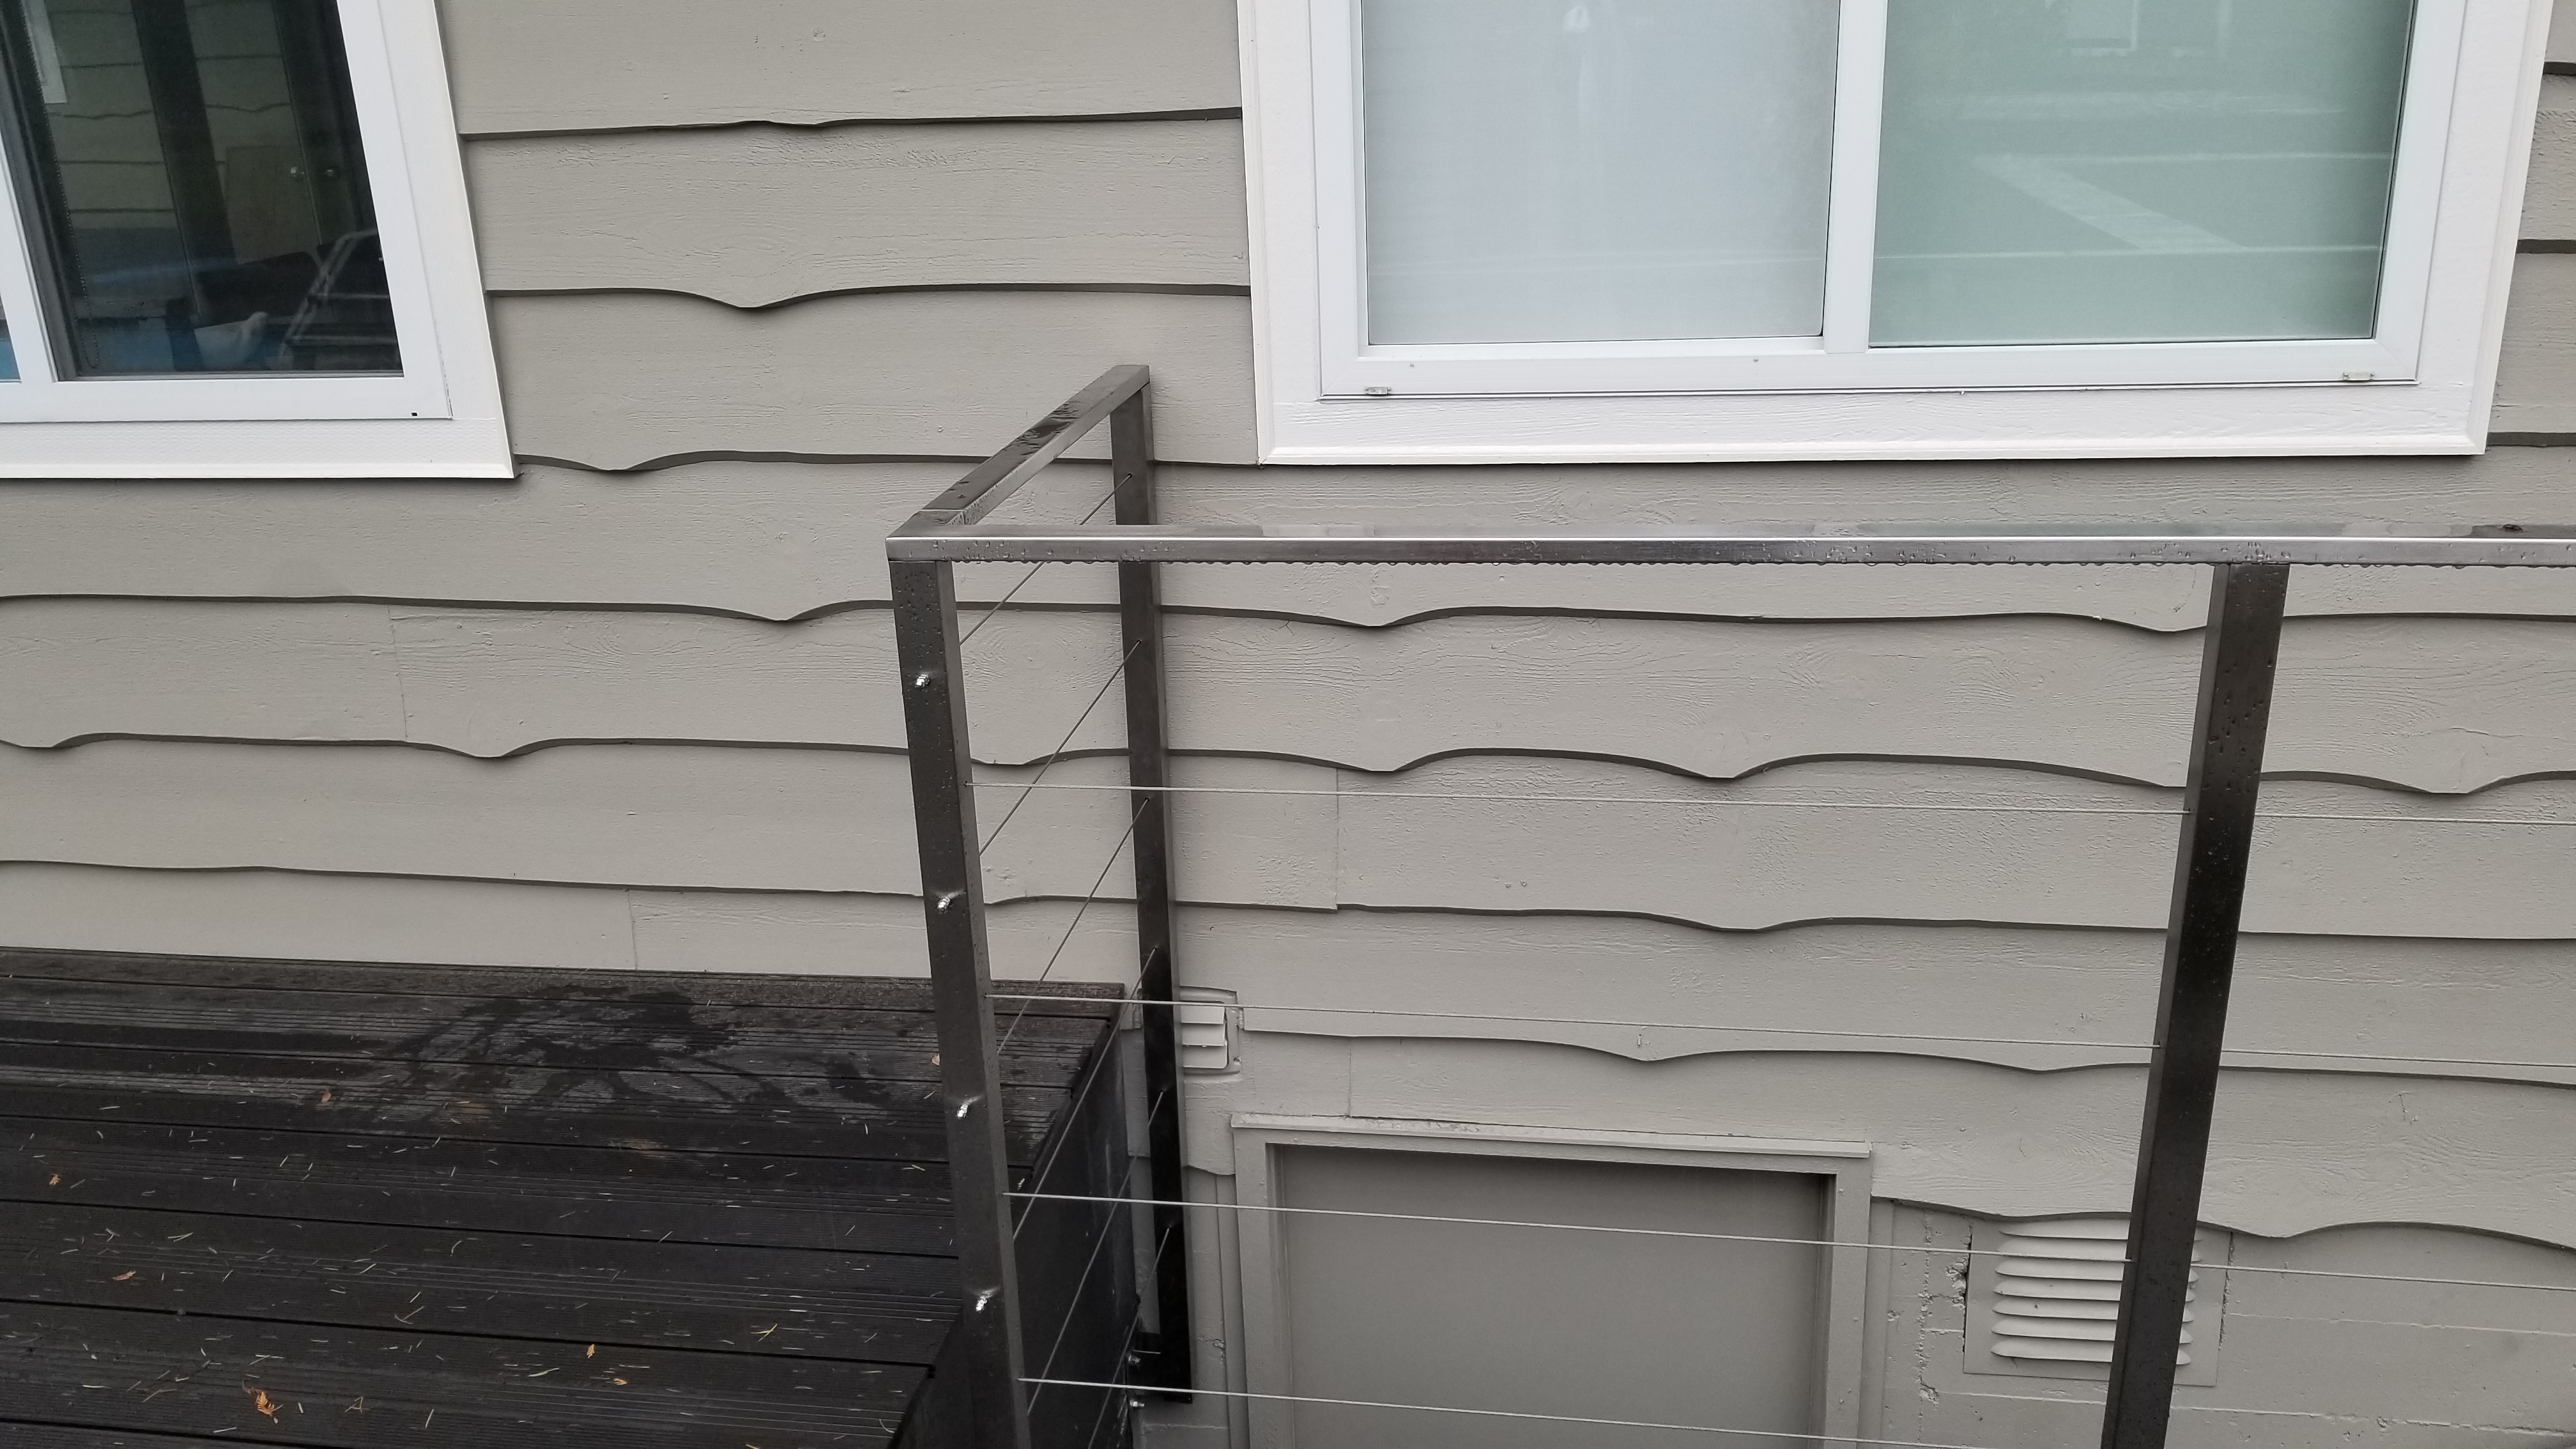 stainless steel cable railing portfolio 14 (5)